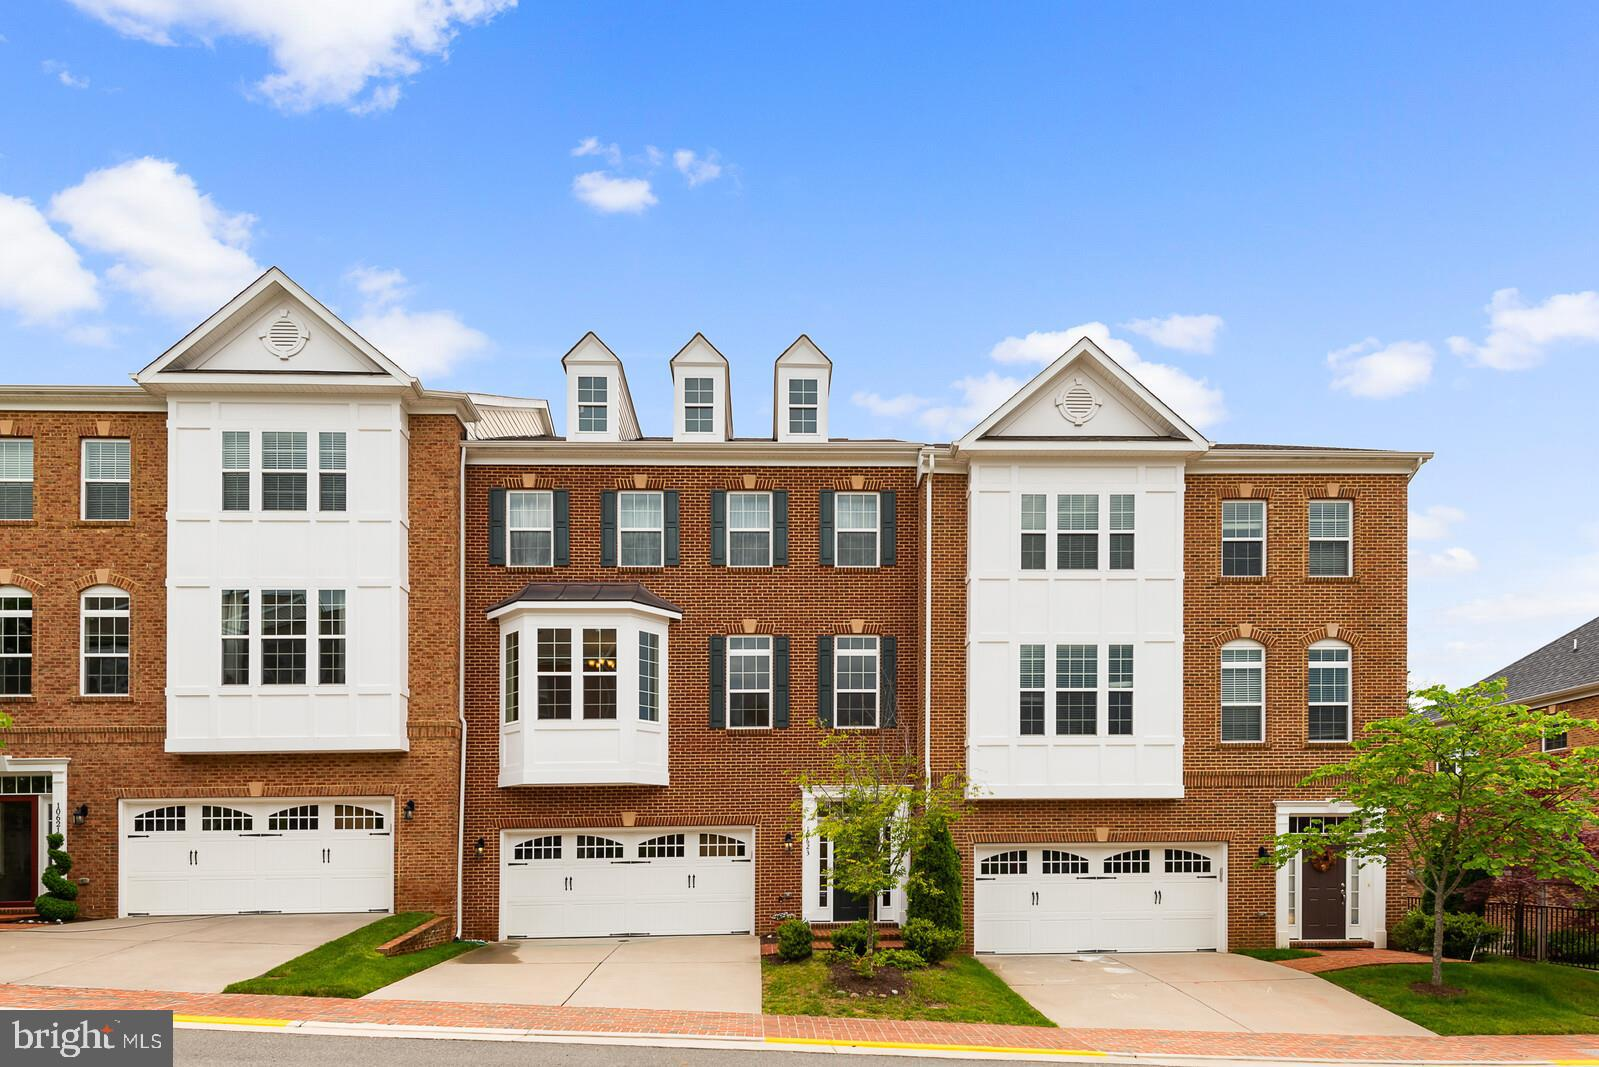 "GORGEOUS SUN FILLED 4BR/3.5BA TOWNHOUSE IN THE HEART OF FAIRFAX CITY!-!-! PRICE REDUCTION!-!-! Website Photos and Virtual Tour: https://northernvirginiarealestatephotography.gofullframe.com/bt/10623_Legacy_Lane.html ---  Gourmet kitchen, granite countertops and breakfast bar, 42"" maple cabinets, custom design marble & glass backsplash, GE Profile stainless steel appliances, five burner gas stove, wall oven and microwave convection w/temperature probe**Coffee/Tea Corner**Walk-in pantry**Gas fireplace in family room**Living/dining room bay window w/custom seat & storage**9' ceilings**Recessed lighting**Bedroom level laundry with front load washer and dryer**Bedrooms each have ceiling fan and lighting with remote controls**Hardwood floors throughout**Custom closet system in master closet **Soaking tub, separate shower (with bench) and his & hers separate vanities (with marble sinks) in master bath**Top floor tech corner with built-in maple wood desk**Recreation/Entertainment room with heated flooring, HD 44"" TV (conveys), custom wet bar, with wine cave/cooler, cabinets w/whisper closure, built-ins and extra storage**Finished garage with sealed flooring, with extra storage, and second refrigerator (conveys)**Dual zone HVAC with programmable thermostat**3000+ sq ft**High efficiency 66 gallon water heater**Dual-pane and insulated windows**30-year roof**Raised garden beds**Backyard common ground with privacy trees *** Five minute walk to GMU *** One mile or less to Grocery, Dining,  Shopping, USPS, Library, and more *** Upgrades and custom touches go on, and on. Don't miss this gem!"